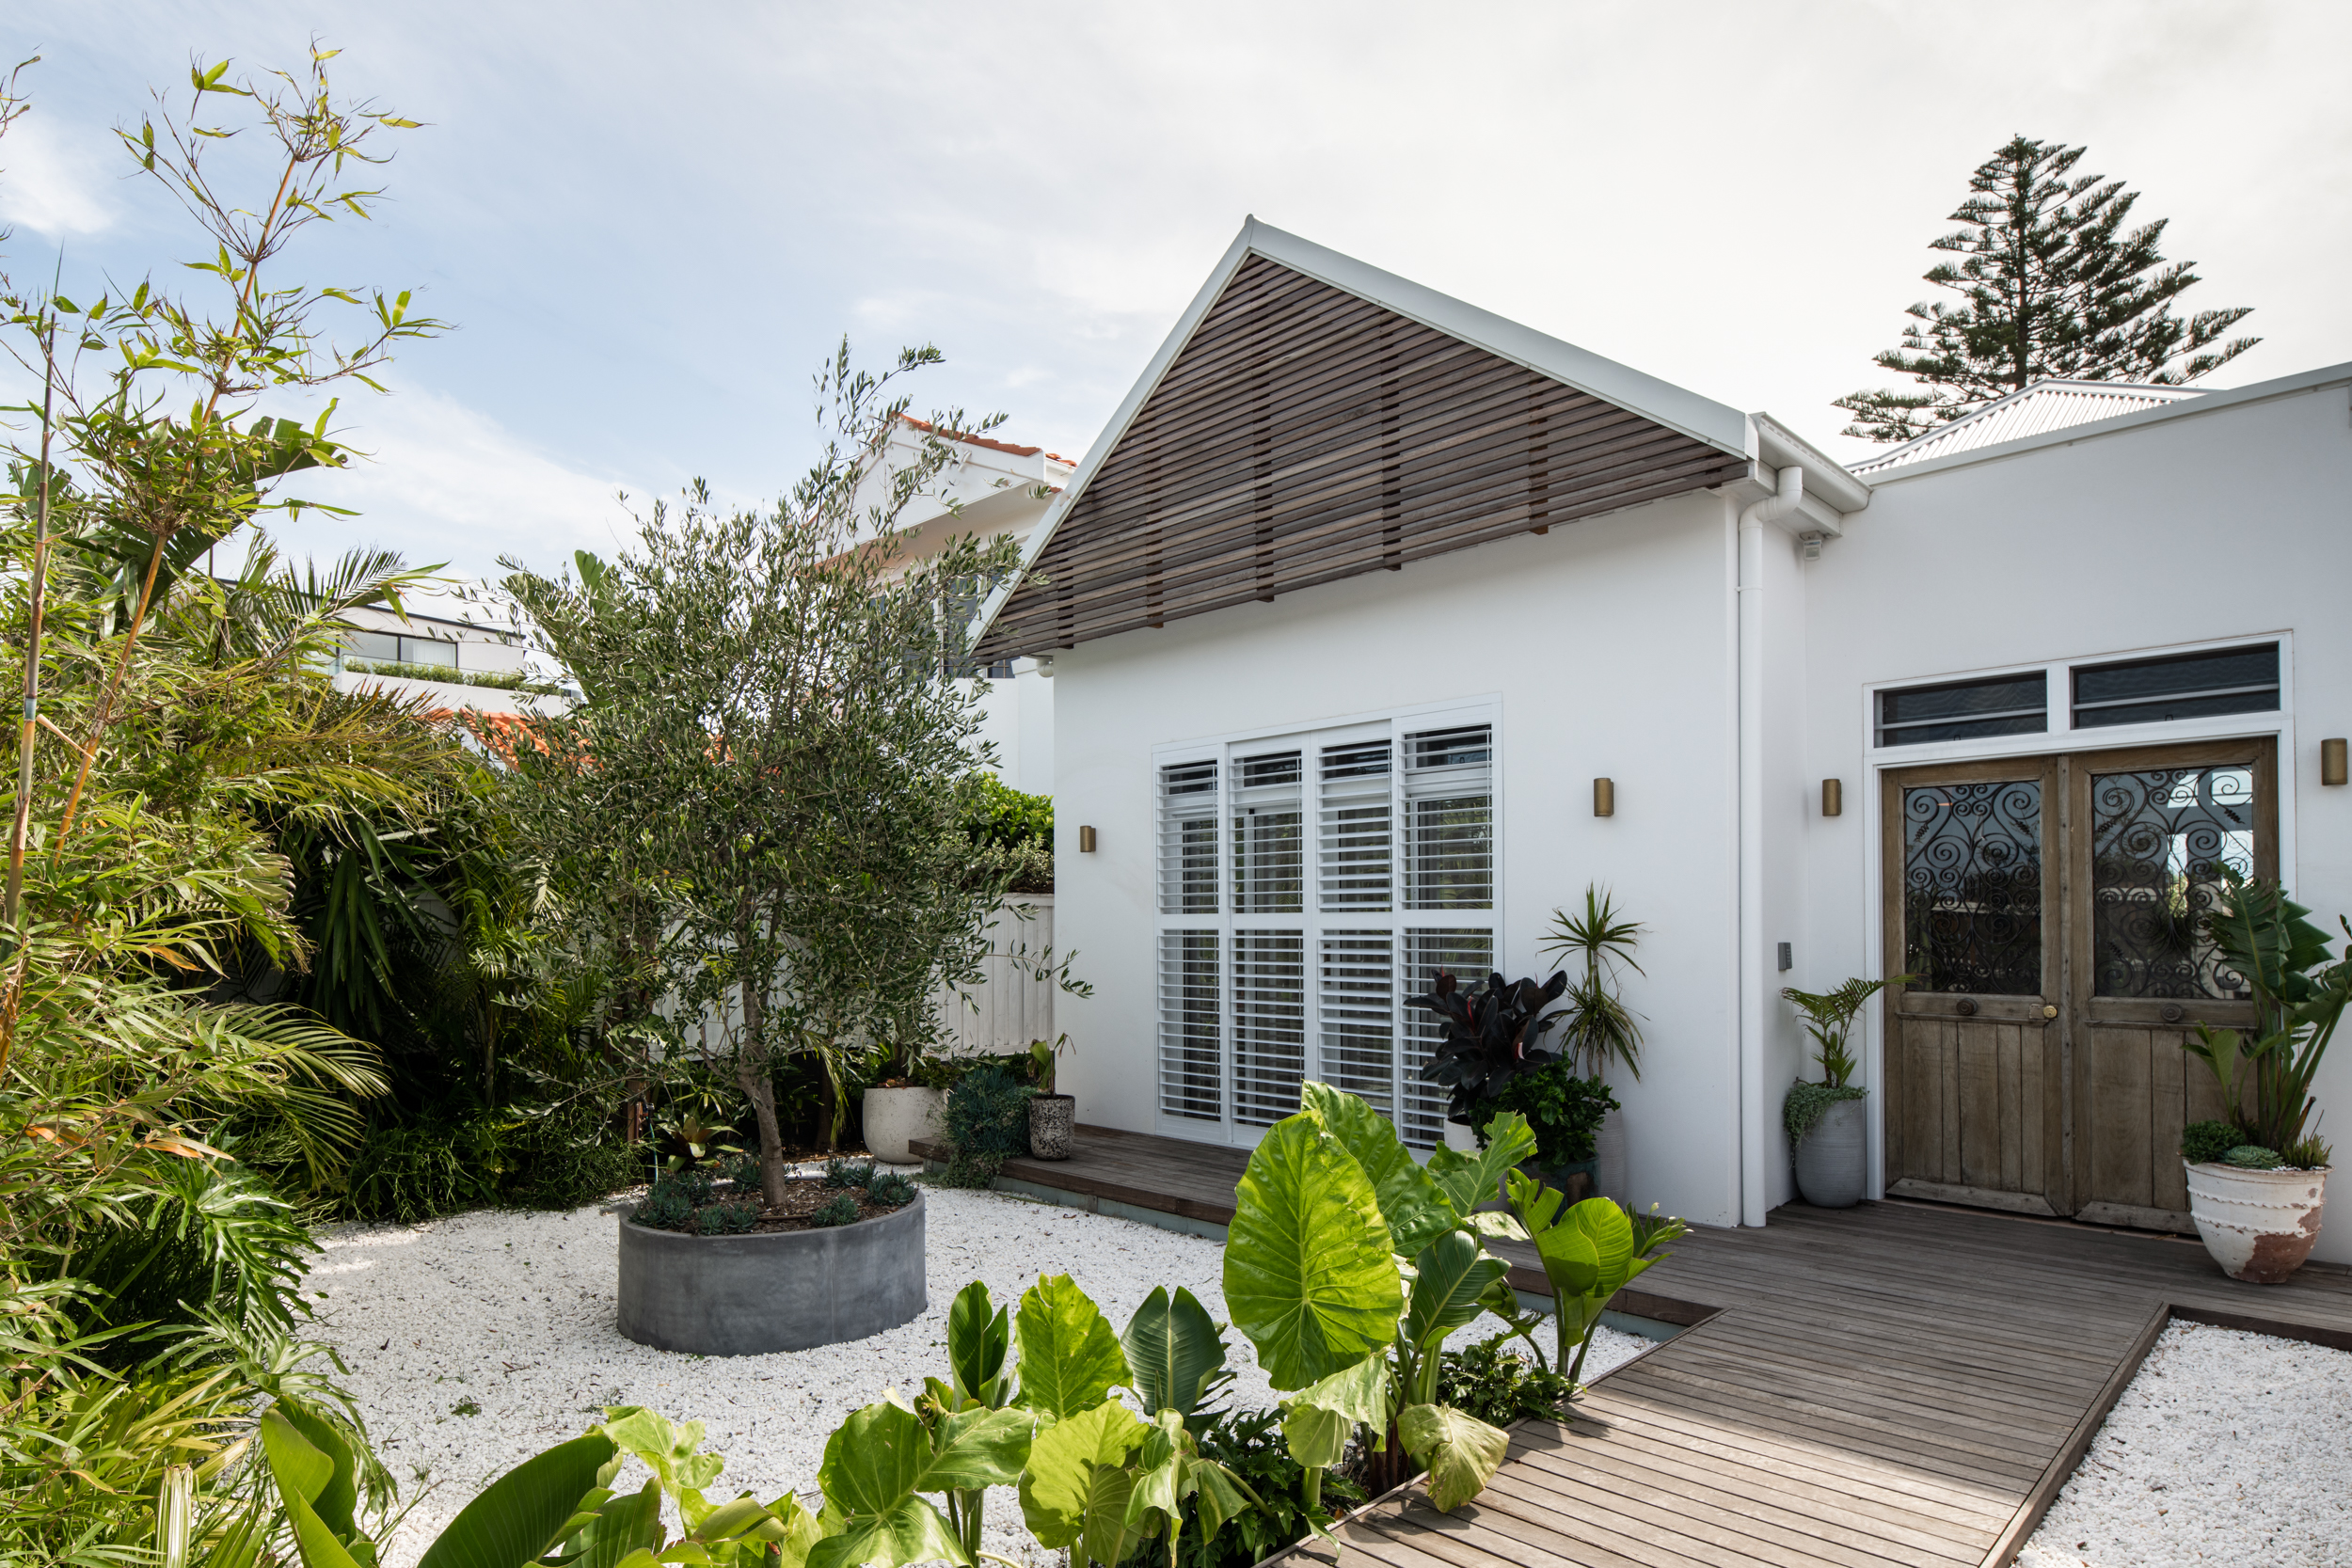 WalkerBuild-Vaucluse-Renovation-Construction-Sydney-Old Head Road LR-32